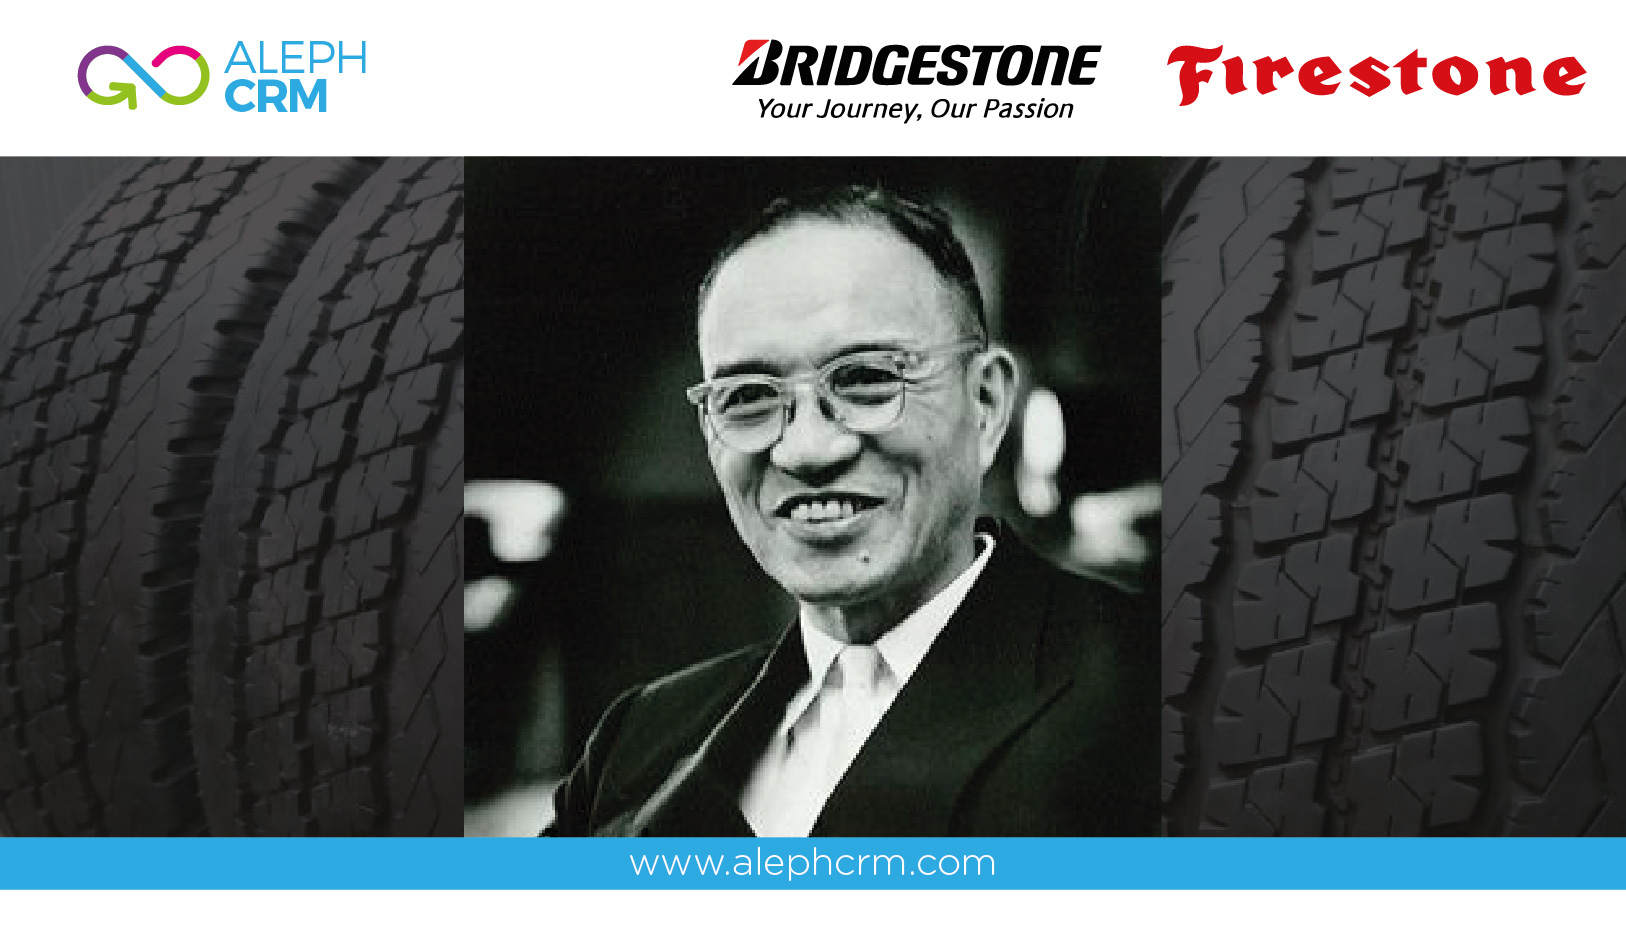 Bridgestone prepares its experts to provide the best online shopping experience with pick up in more than 100 tire facilities